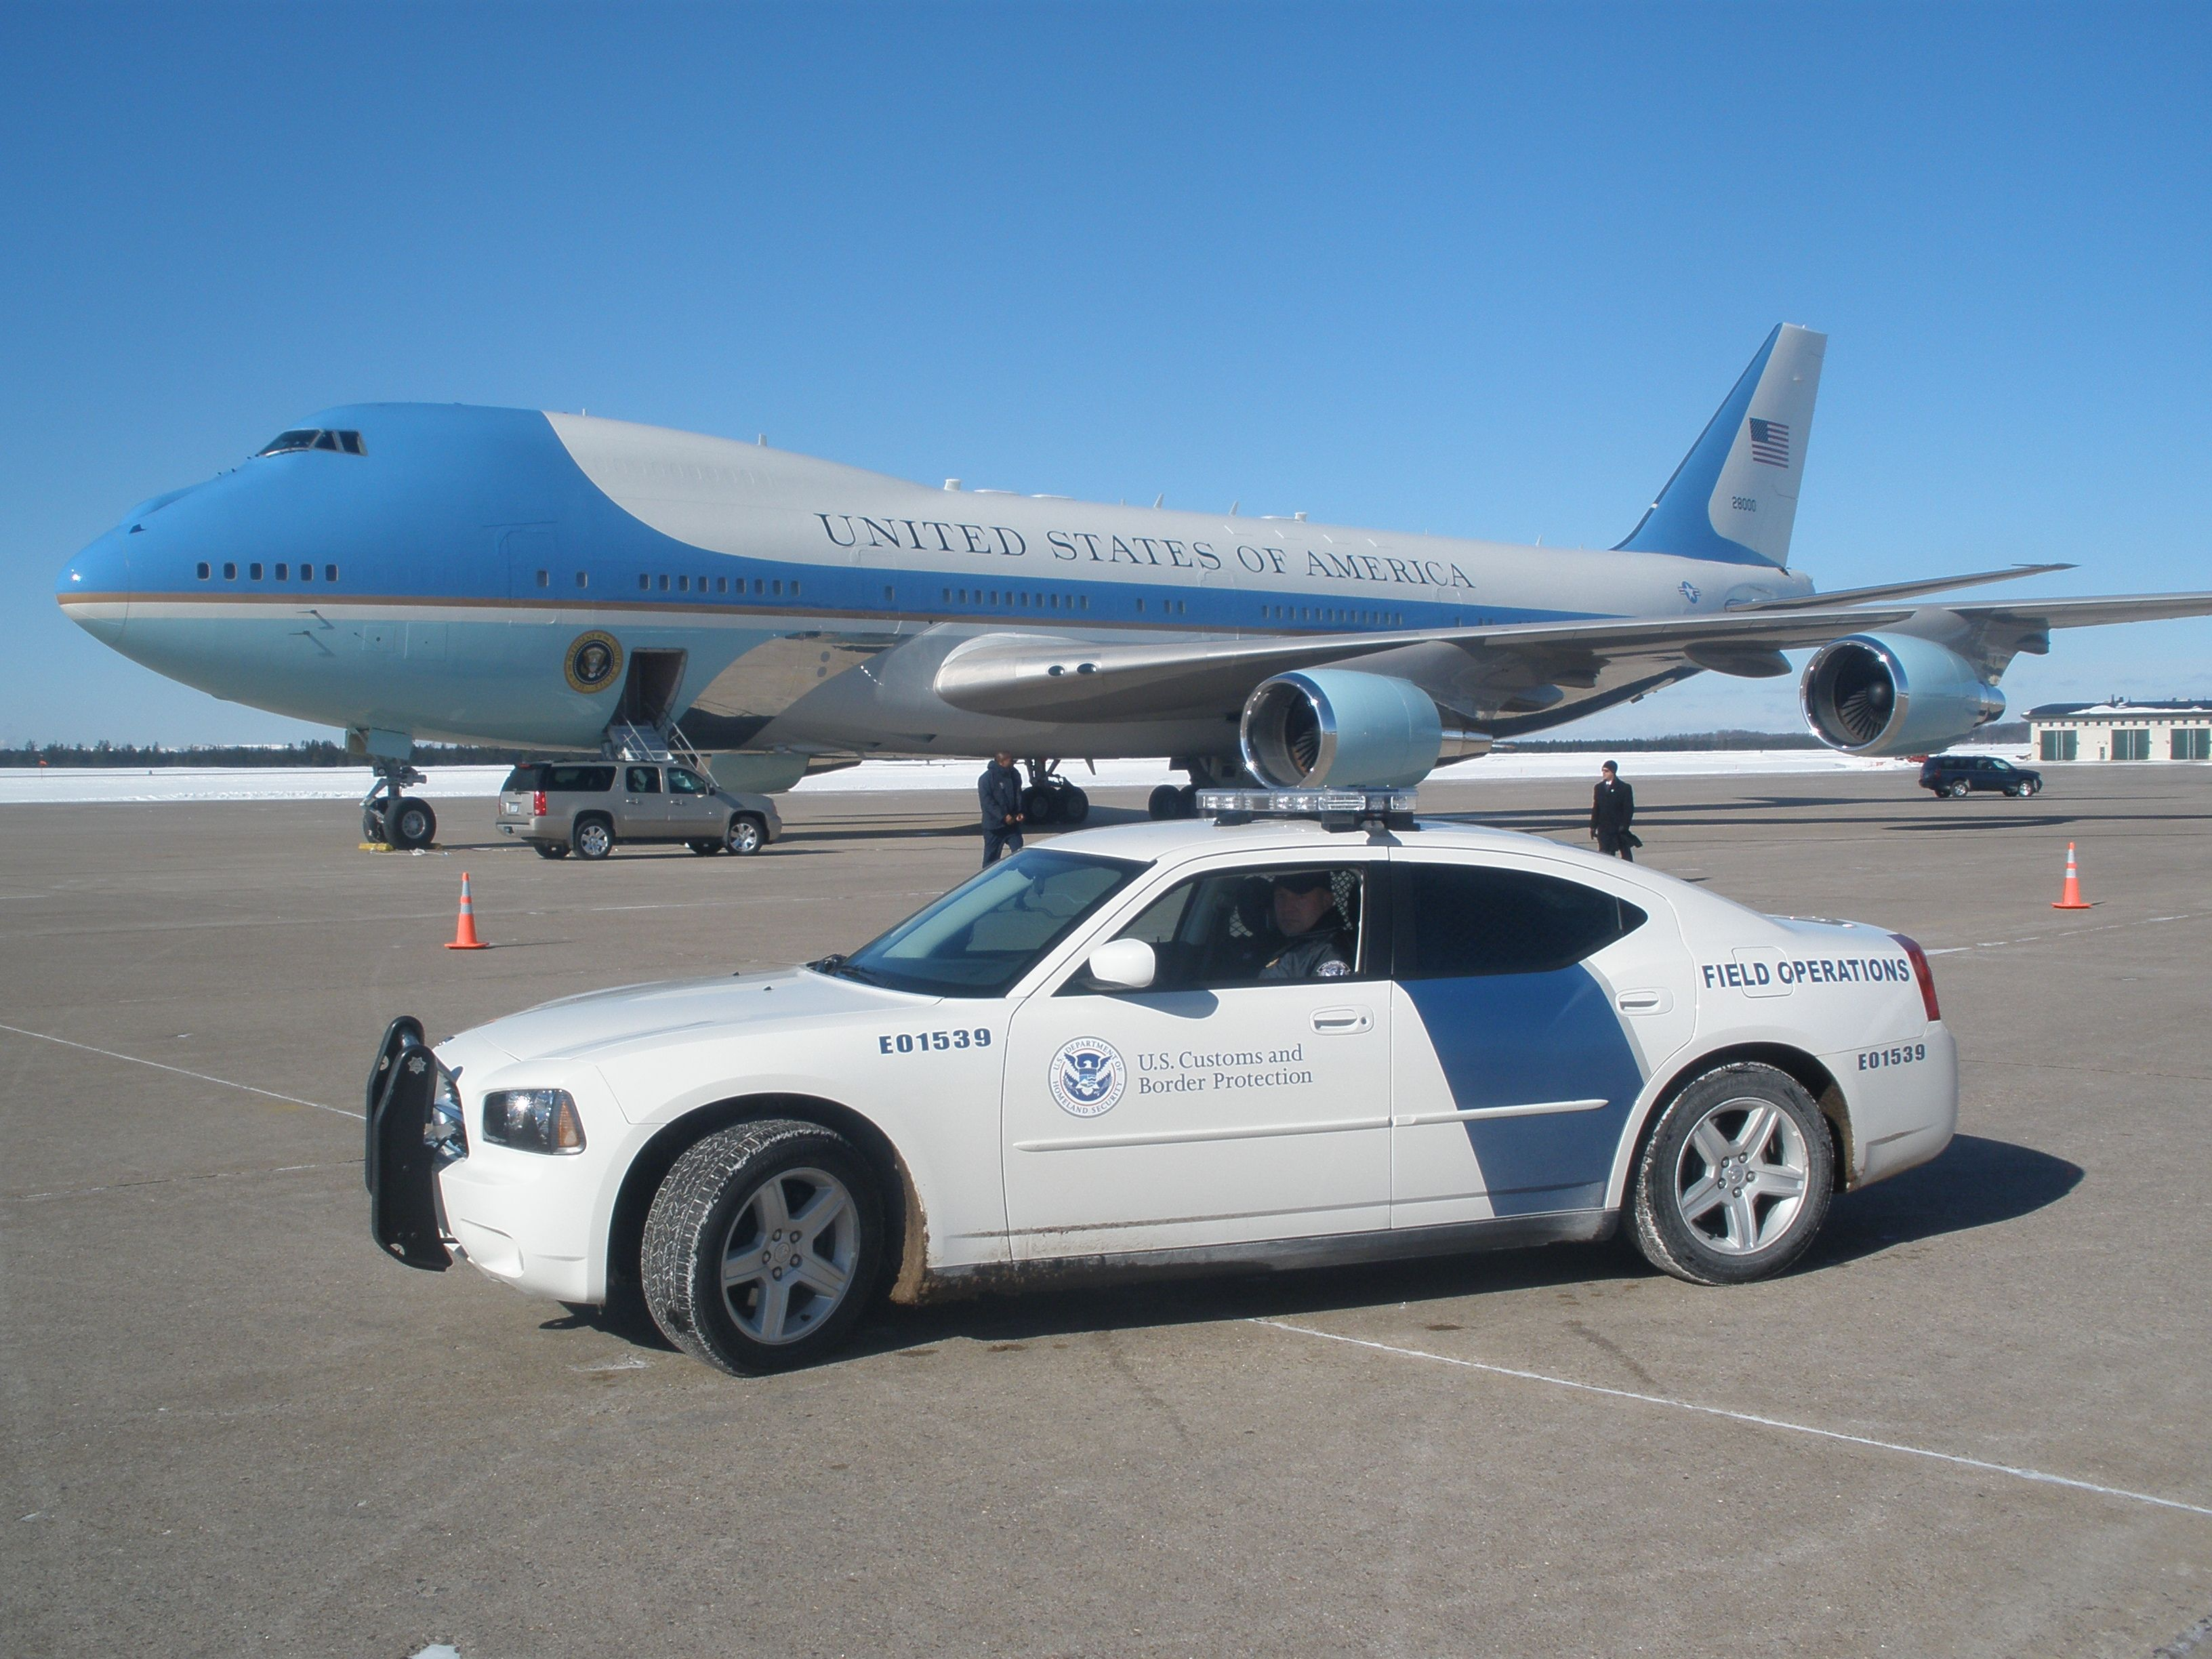 description air force one u s customs border patrol dodge description air force one u s customs border patrol dodge charger police car